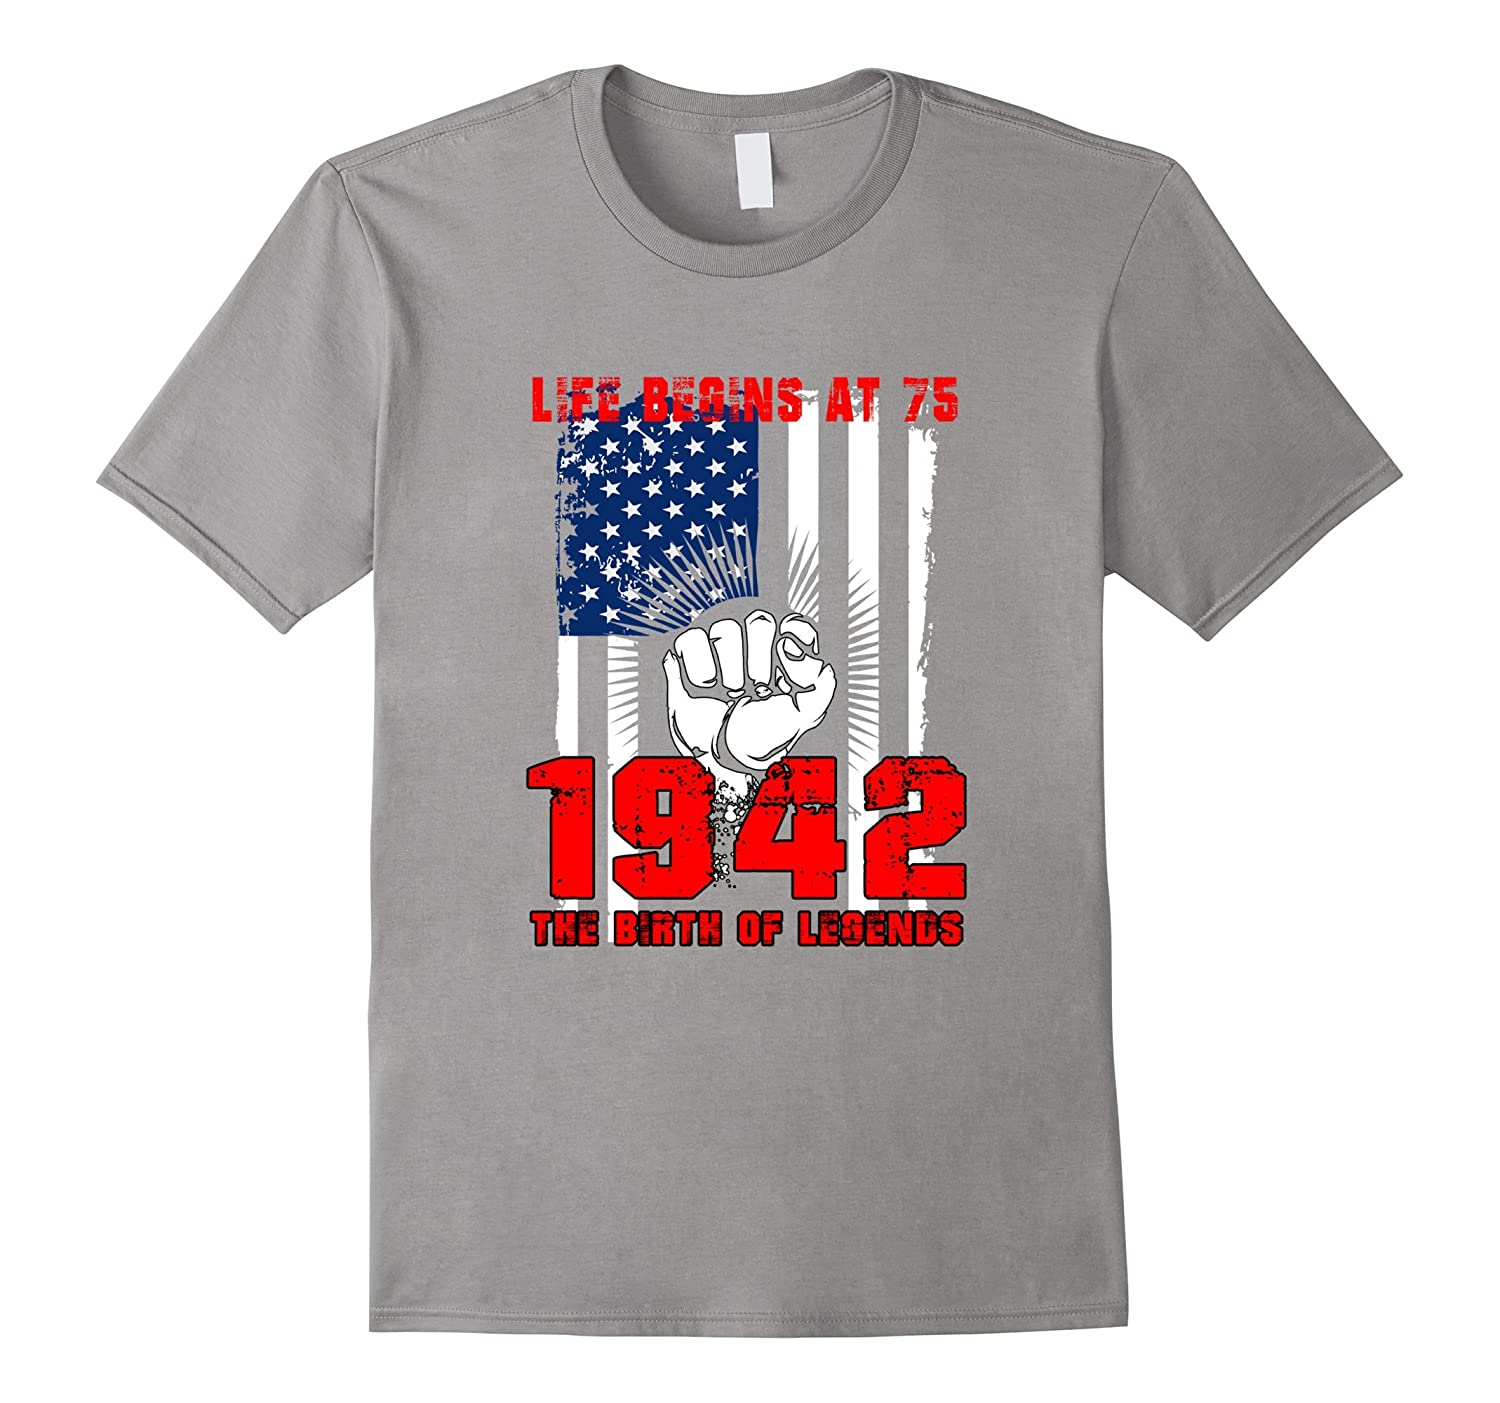 Journey To 75th Birthday T Shirts For Men Women Turning 75 PL